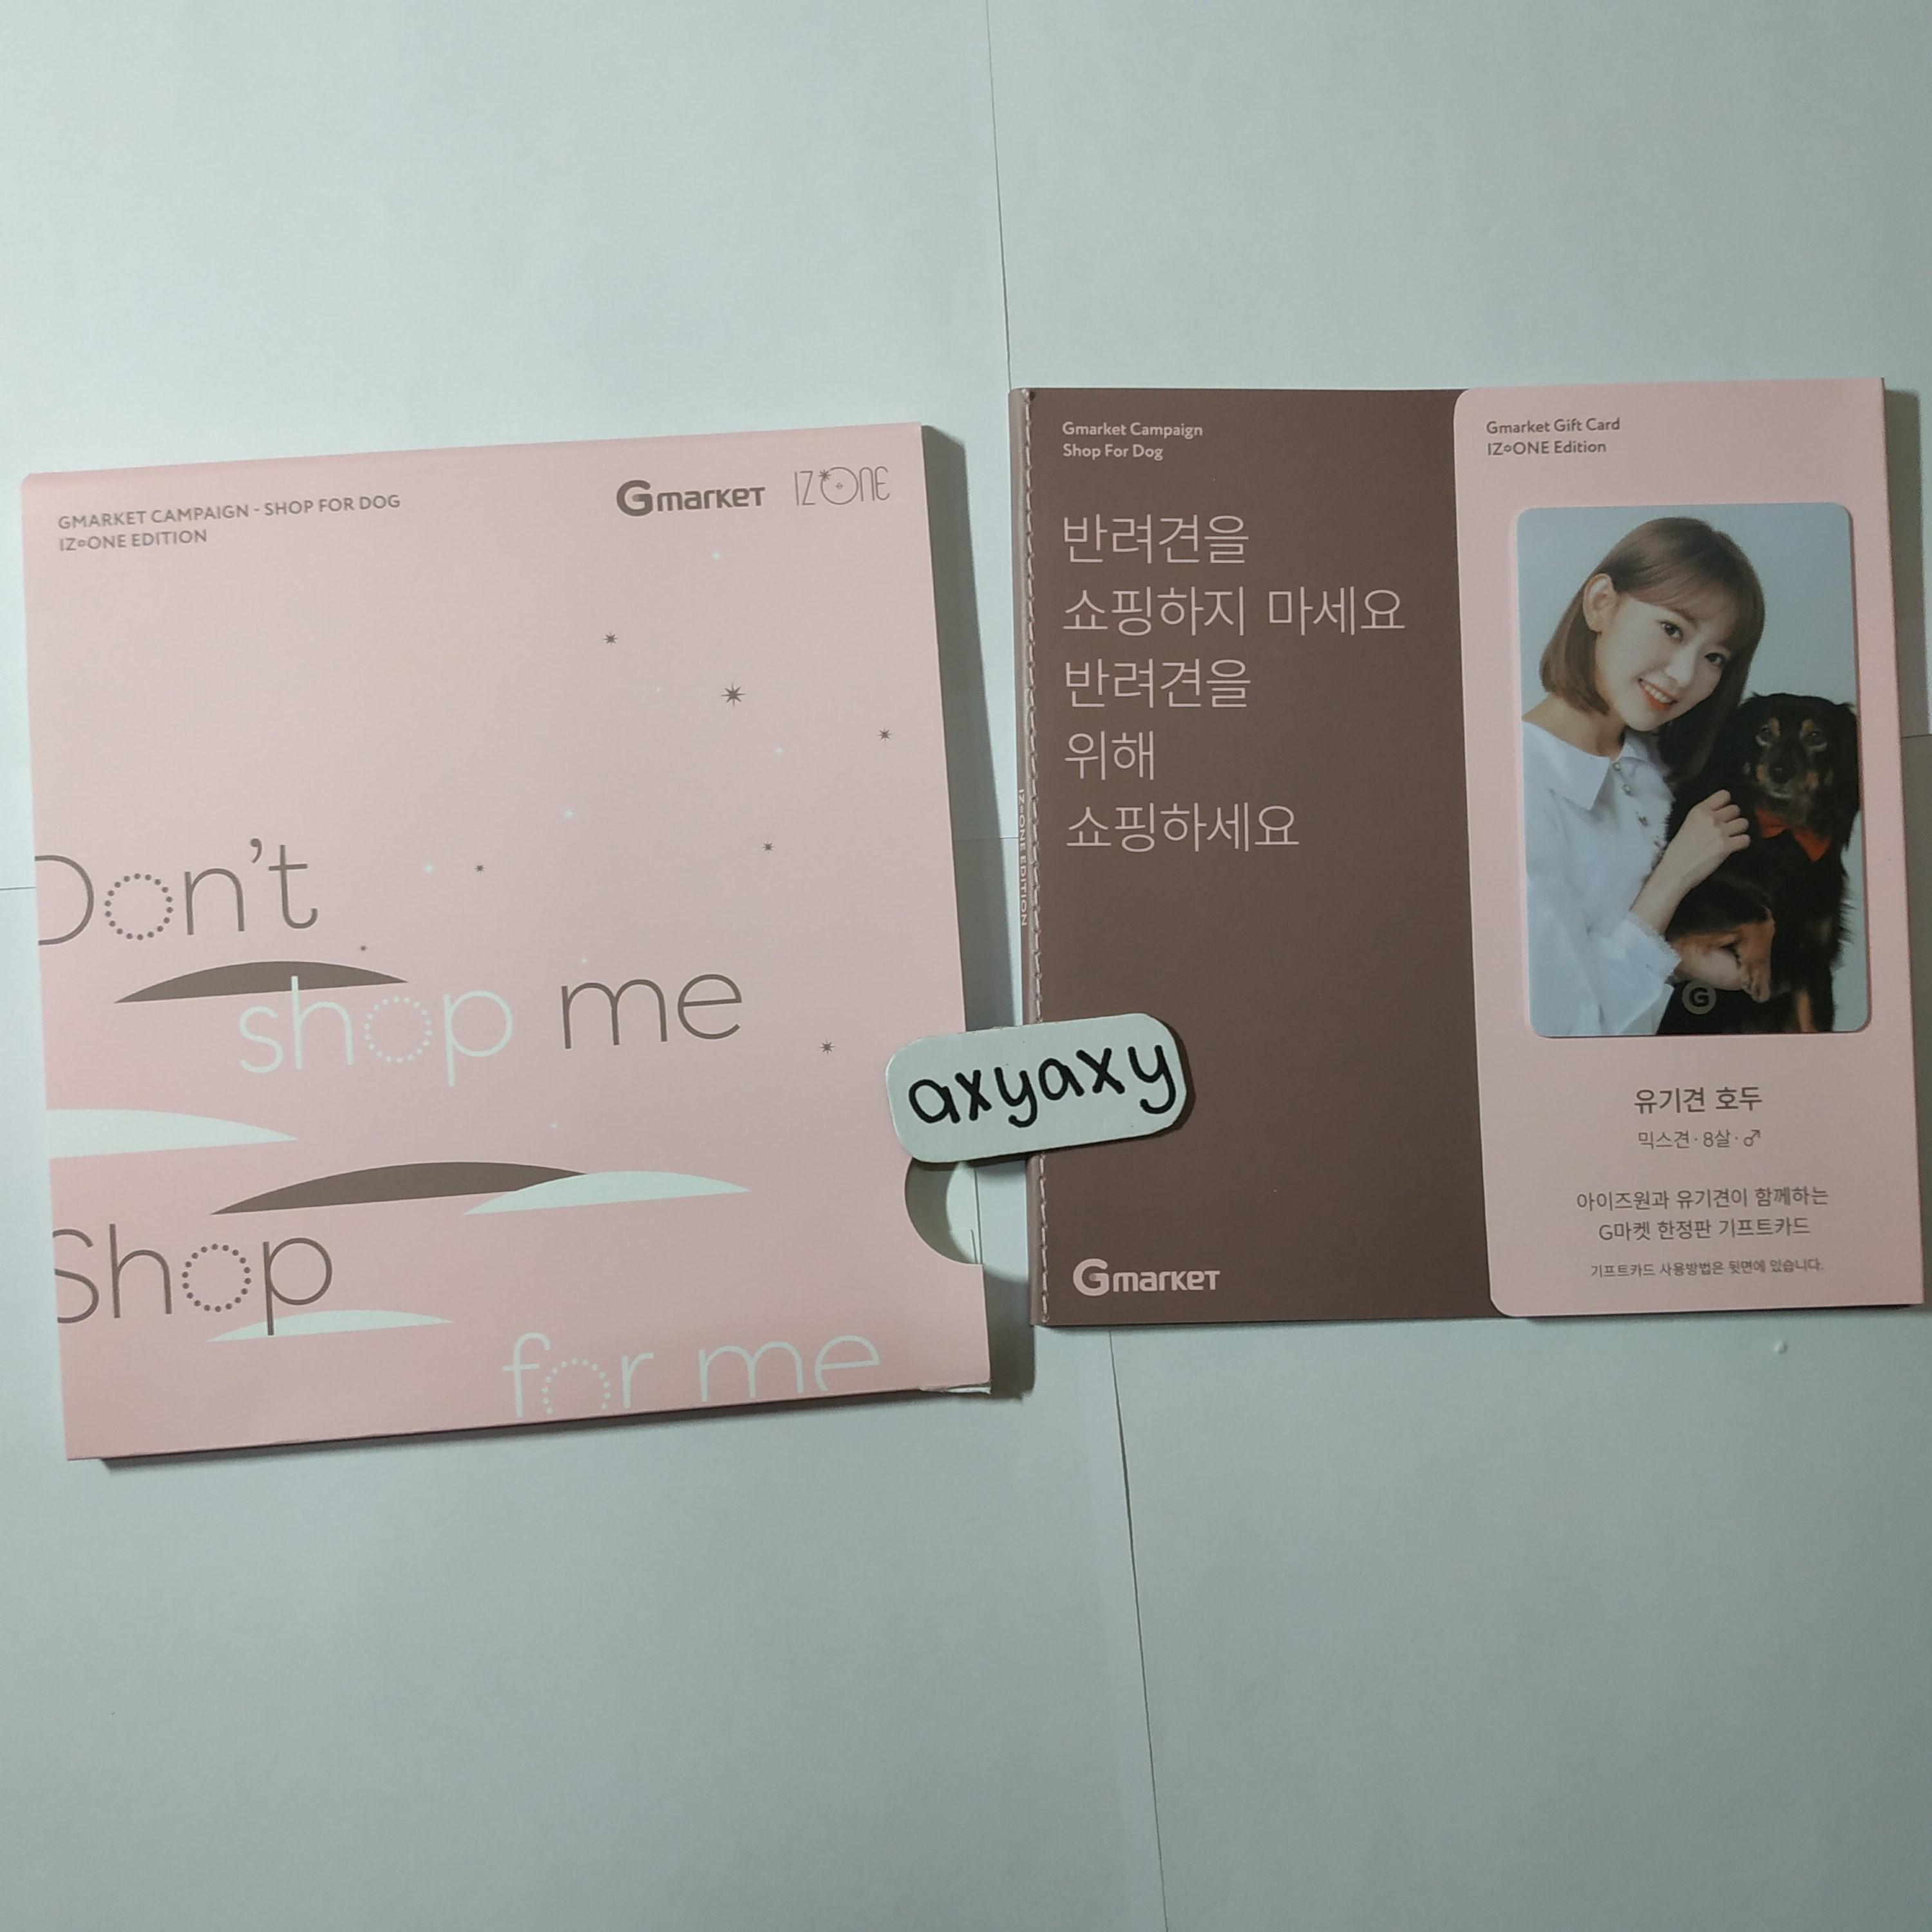 [WTS] IZ*ONE Edition: Gmarket Campaign - Shop For Dog Official Goods